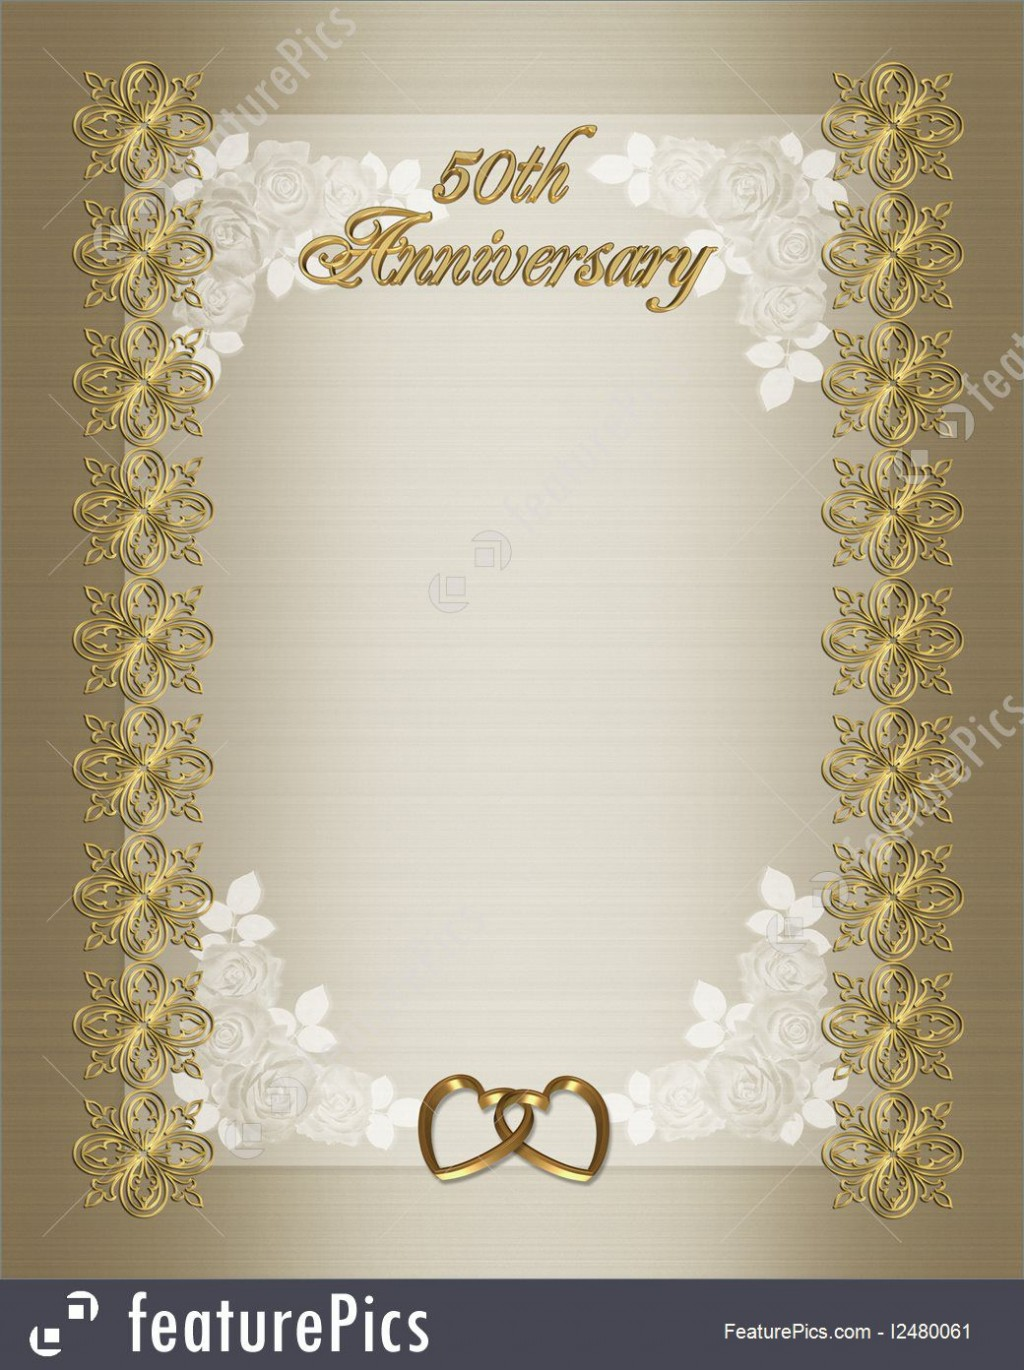 009 Impressive 50th Wedding Anniversary Invitation Sample Inspiration  Samples Free Party Template Card IdeaLarge